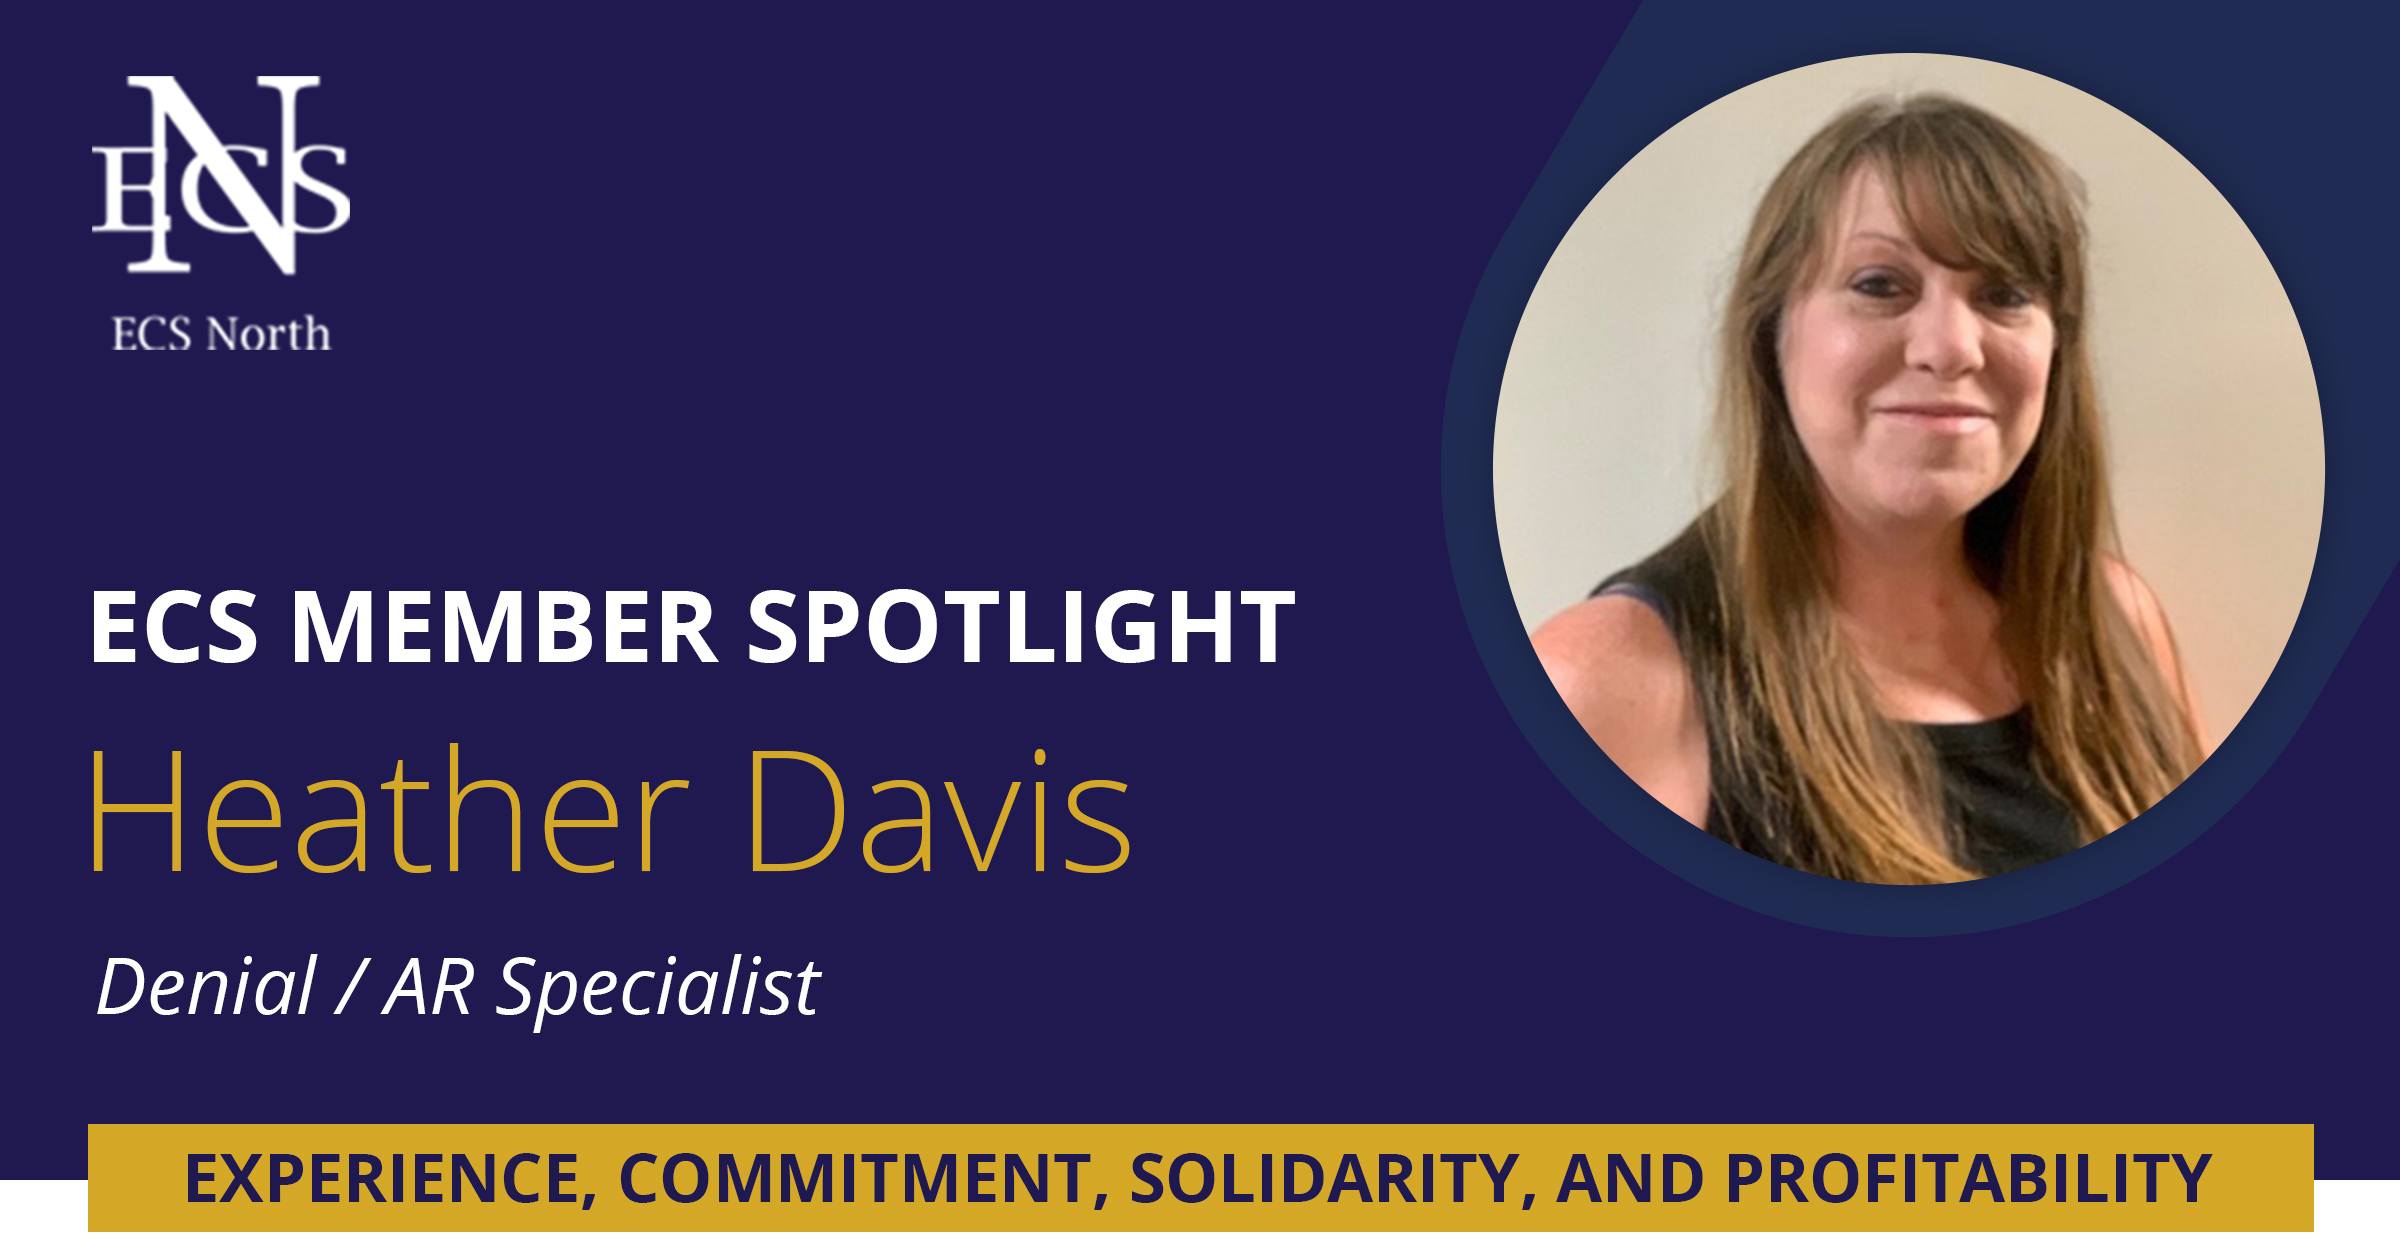 ECS_Member_Spotlight_Heather Davis@2x